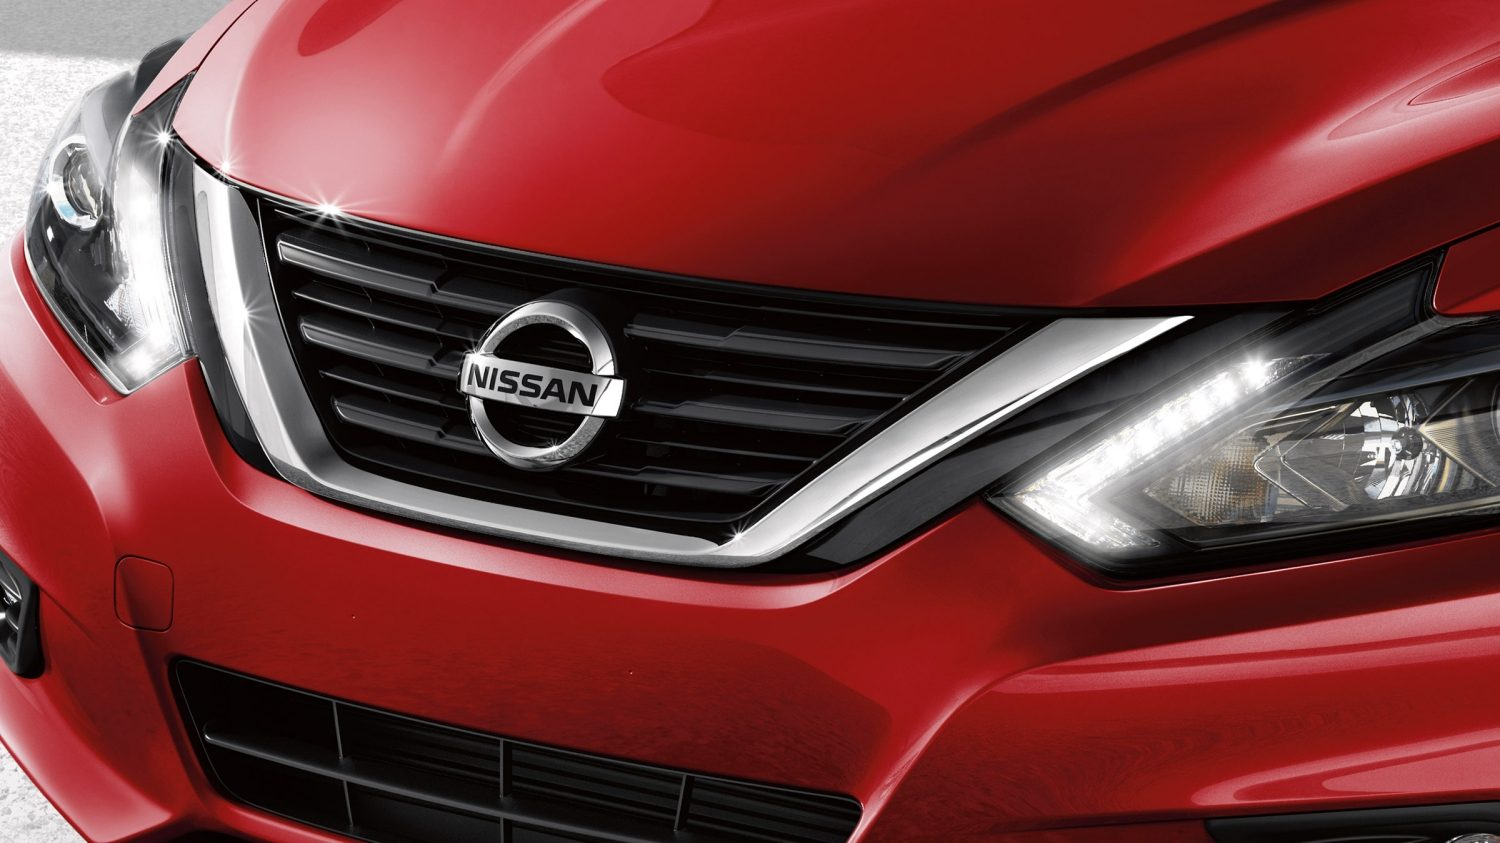 Nissan Altima grille